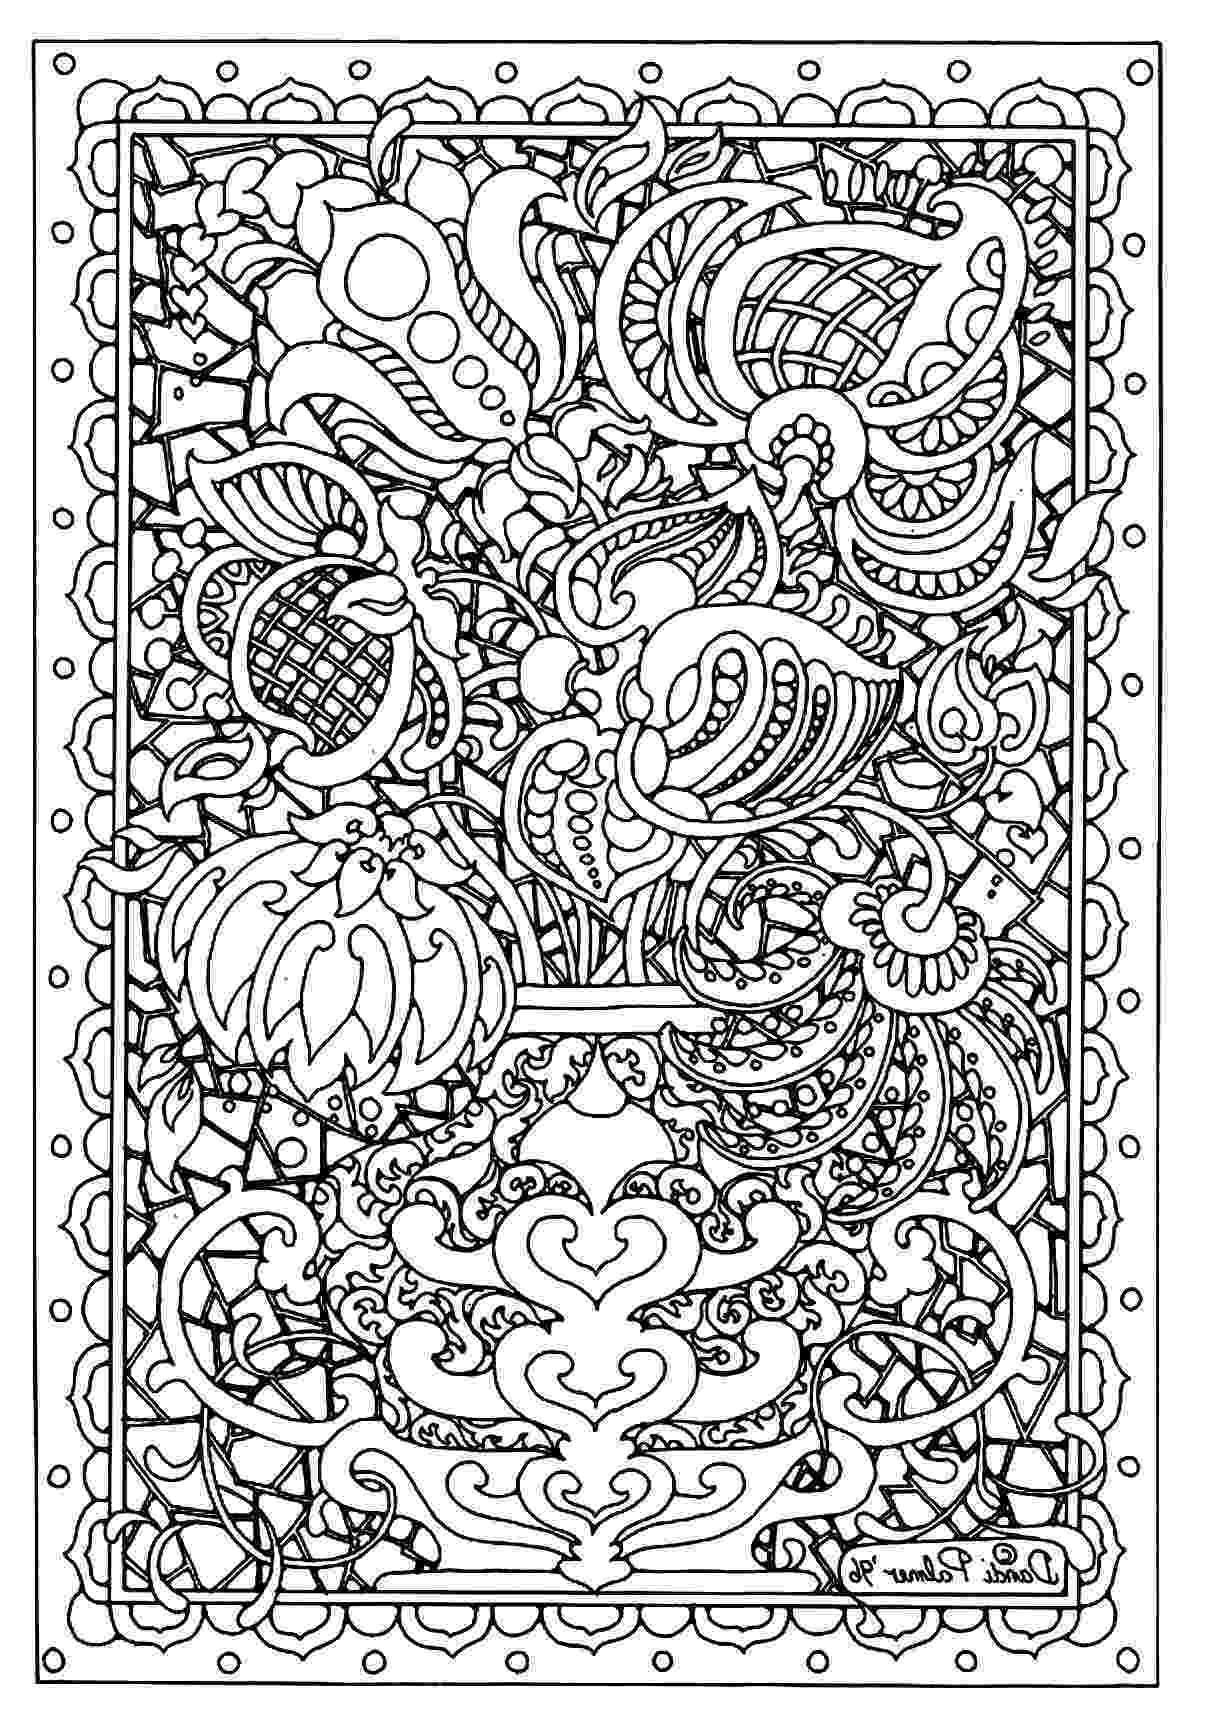 printable difficult coloring pages print download complex coloring pages for kids and adults printable difficult coloring pages